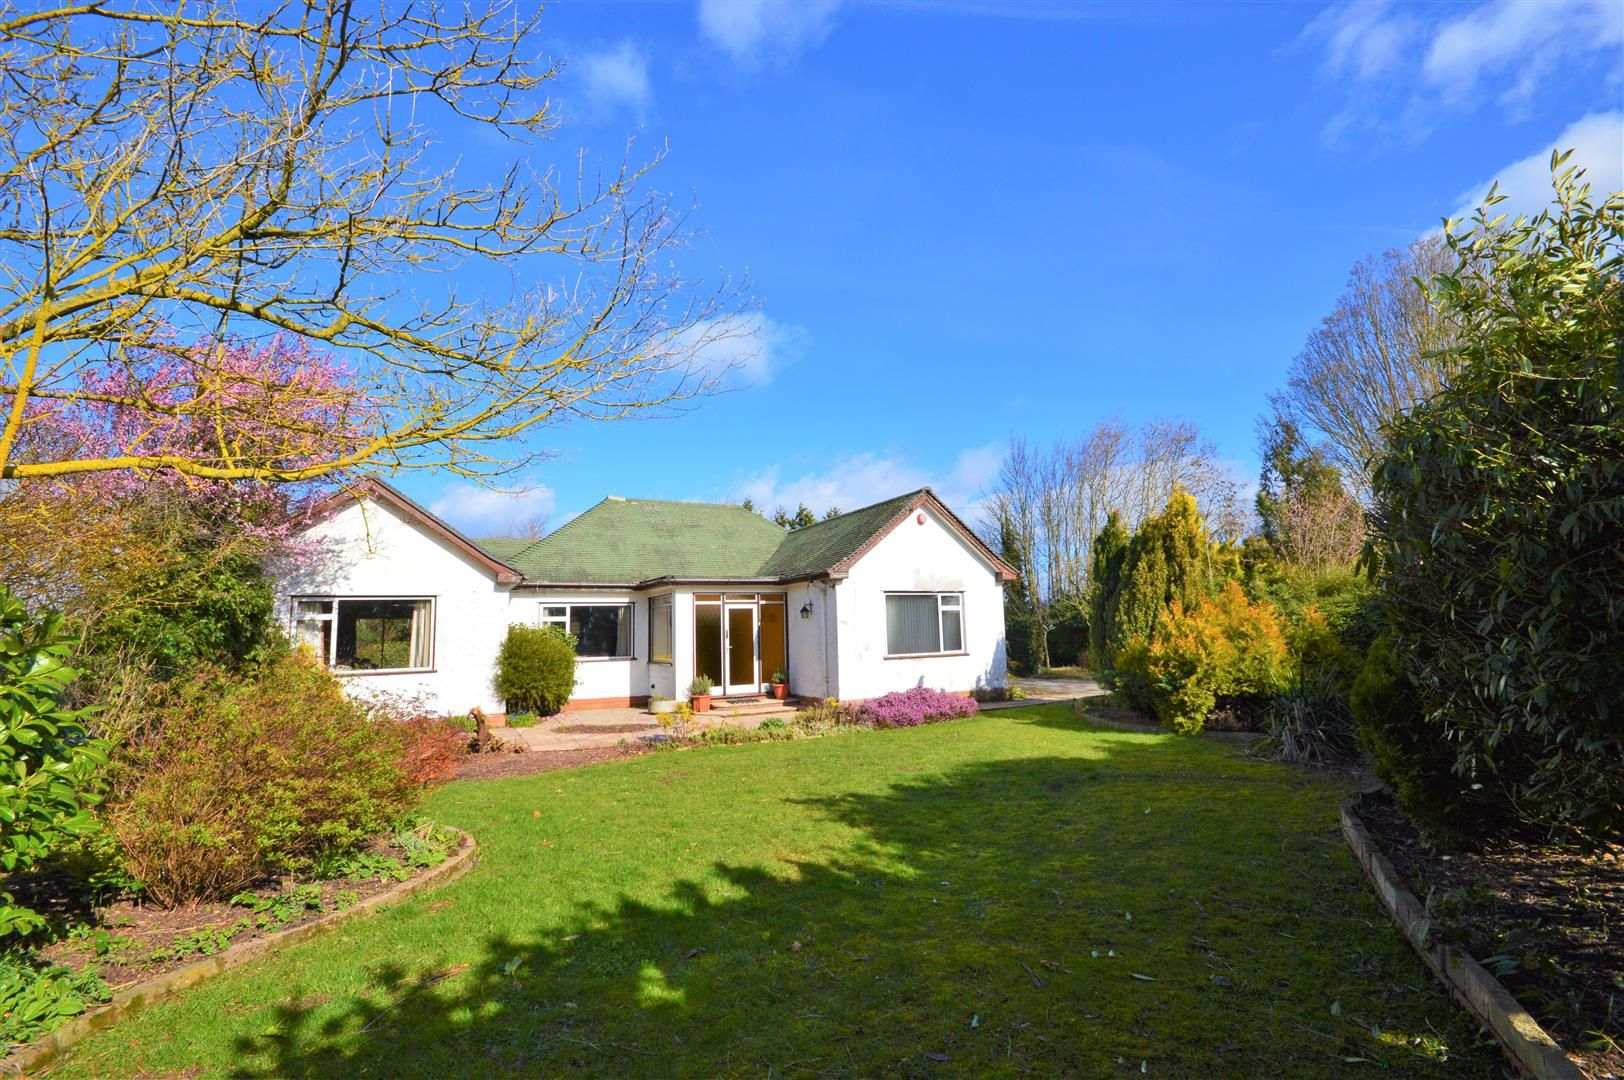 3 bed detached-bungalow for sale in Burghill  - Property Image 1